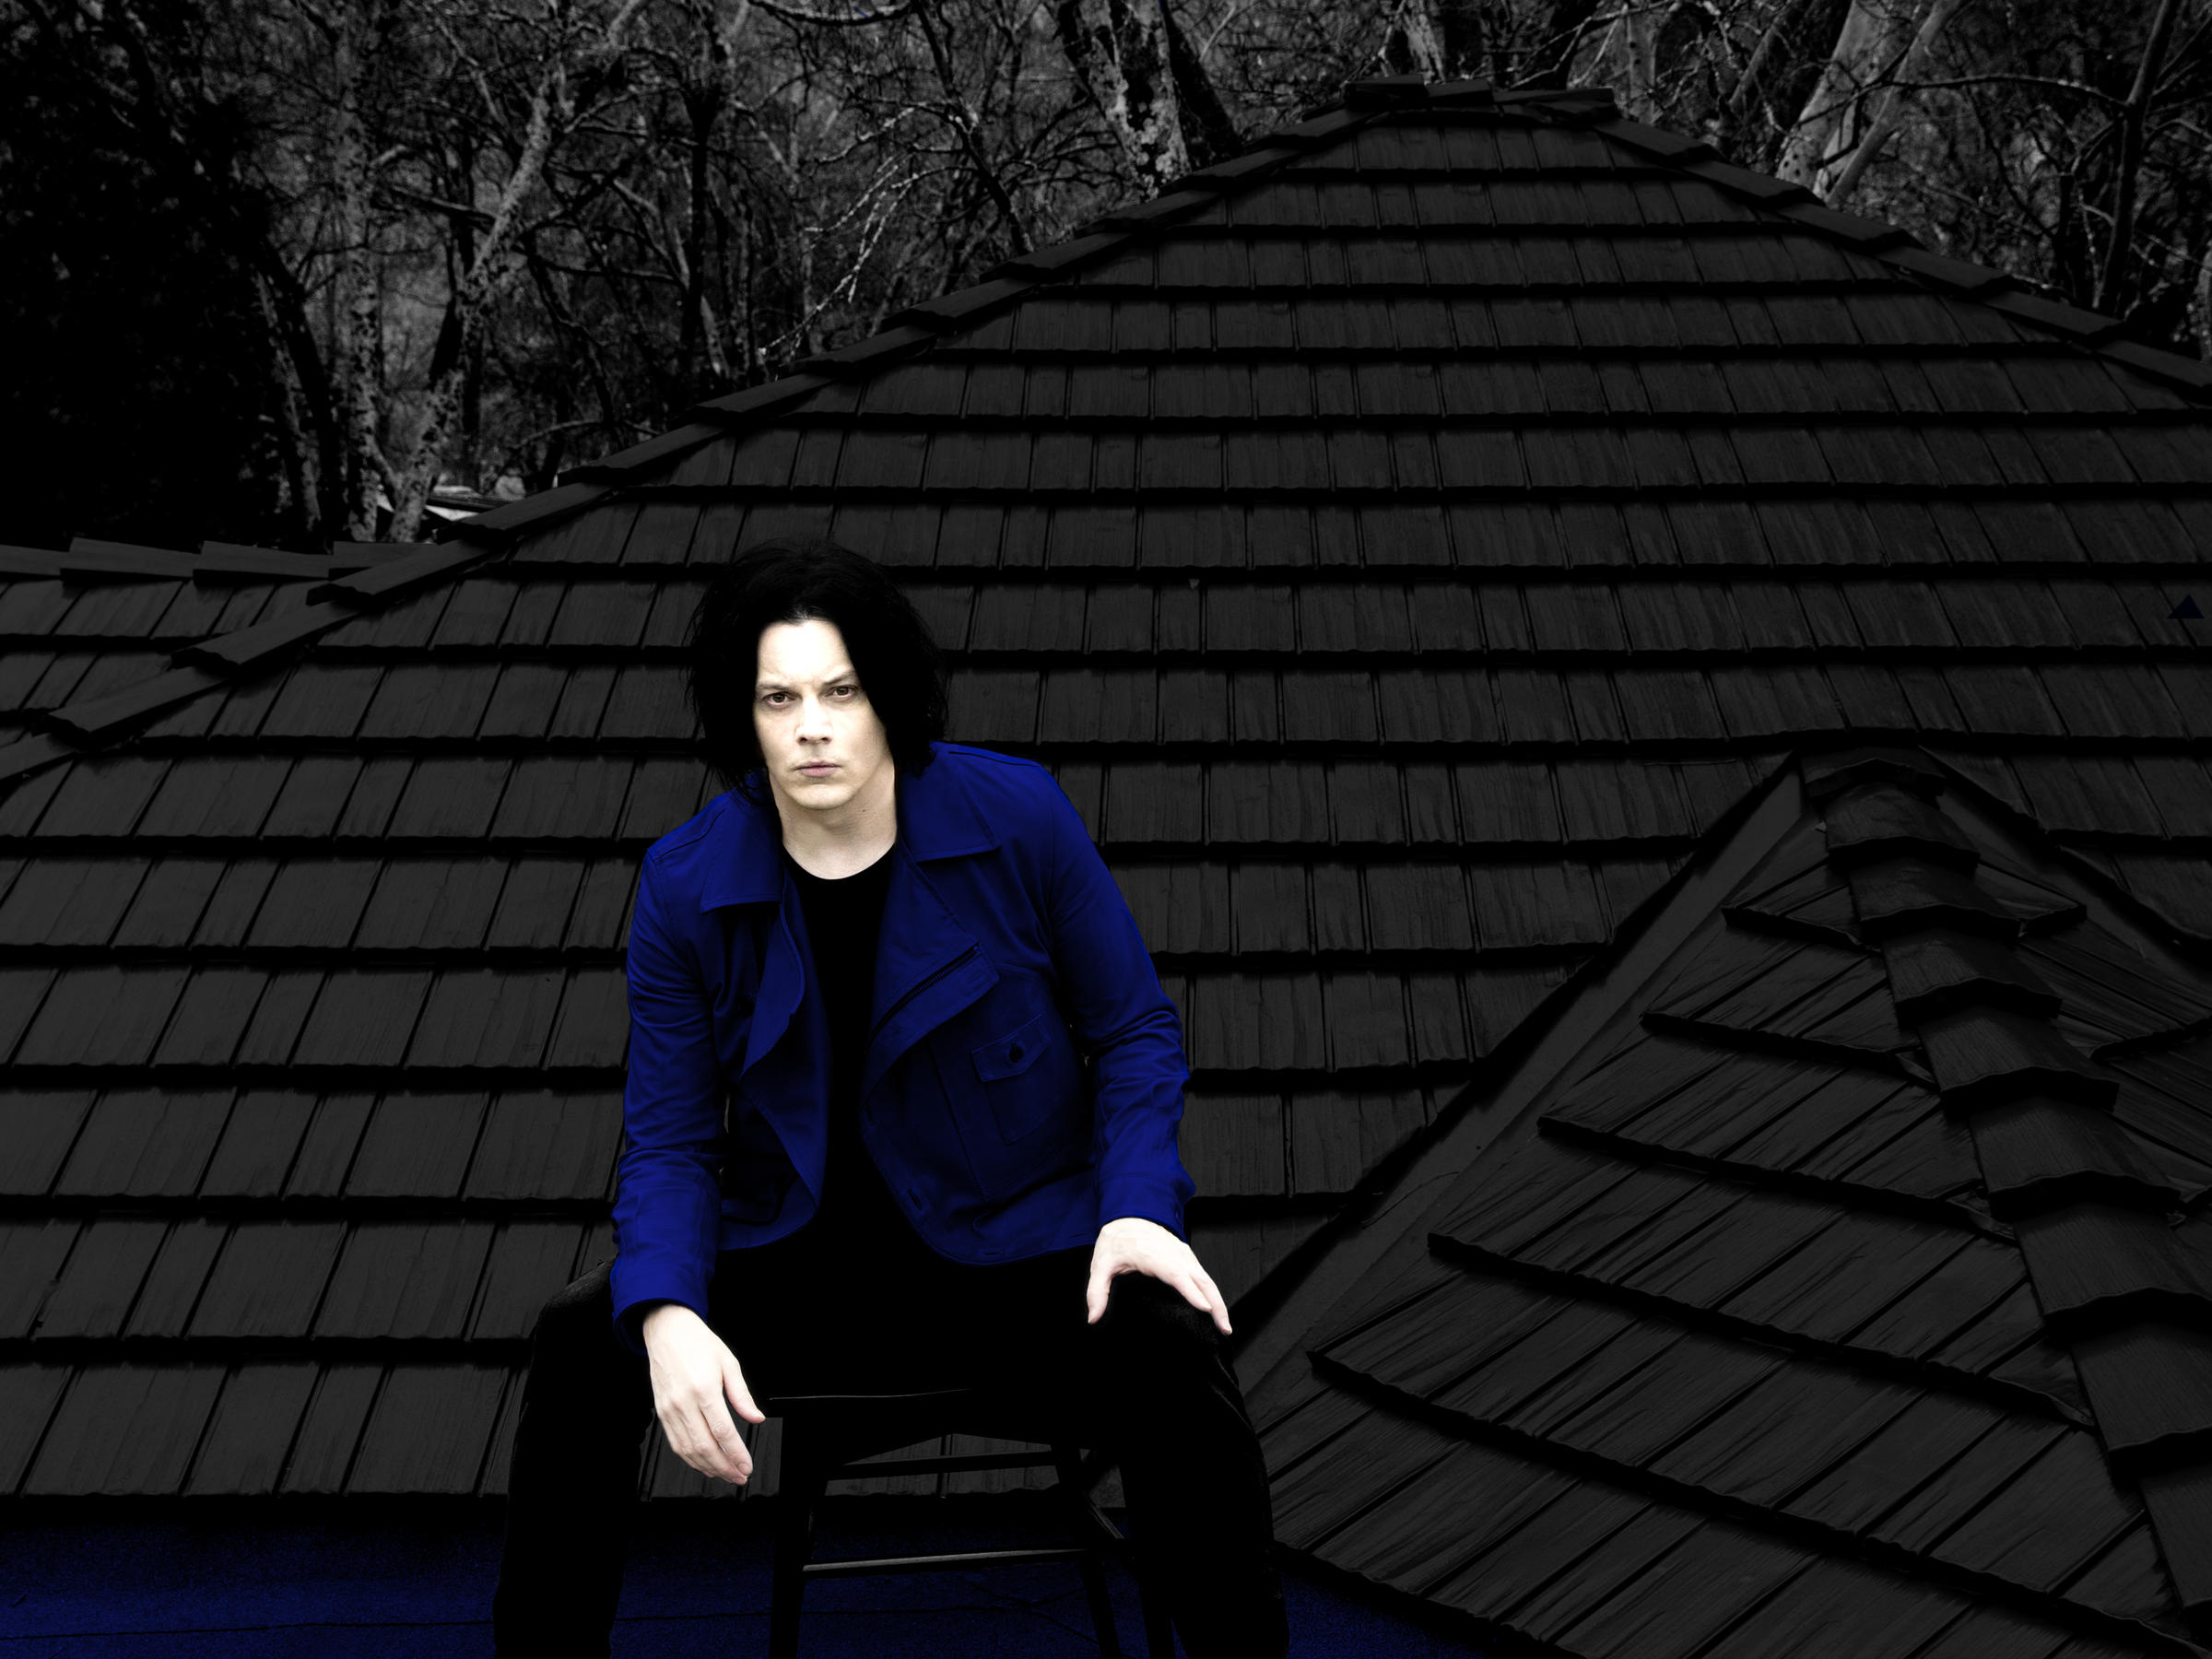 Jack White Releases New Singles For The First Time In 4 Years